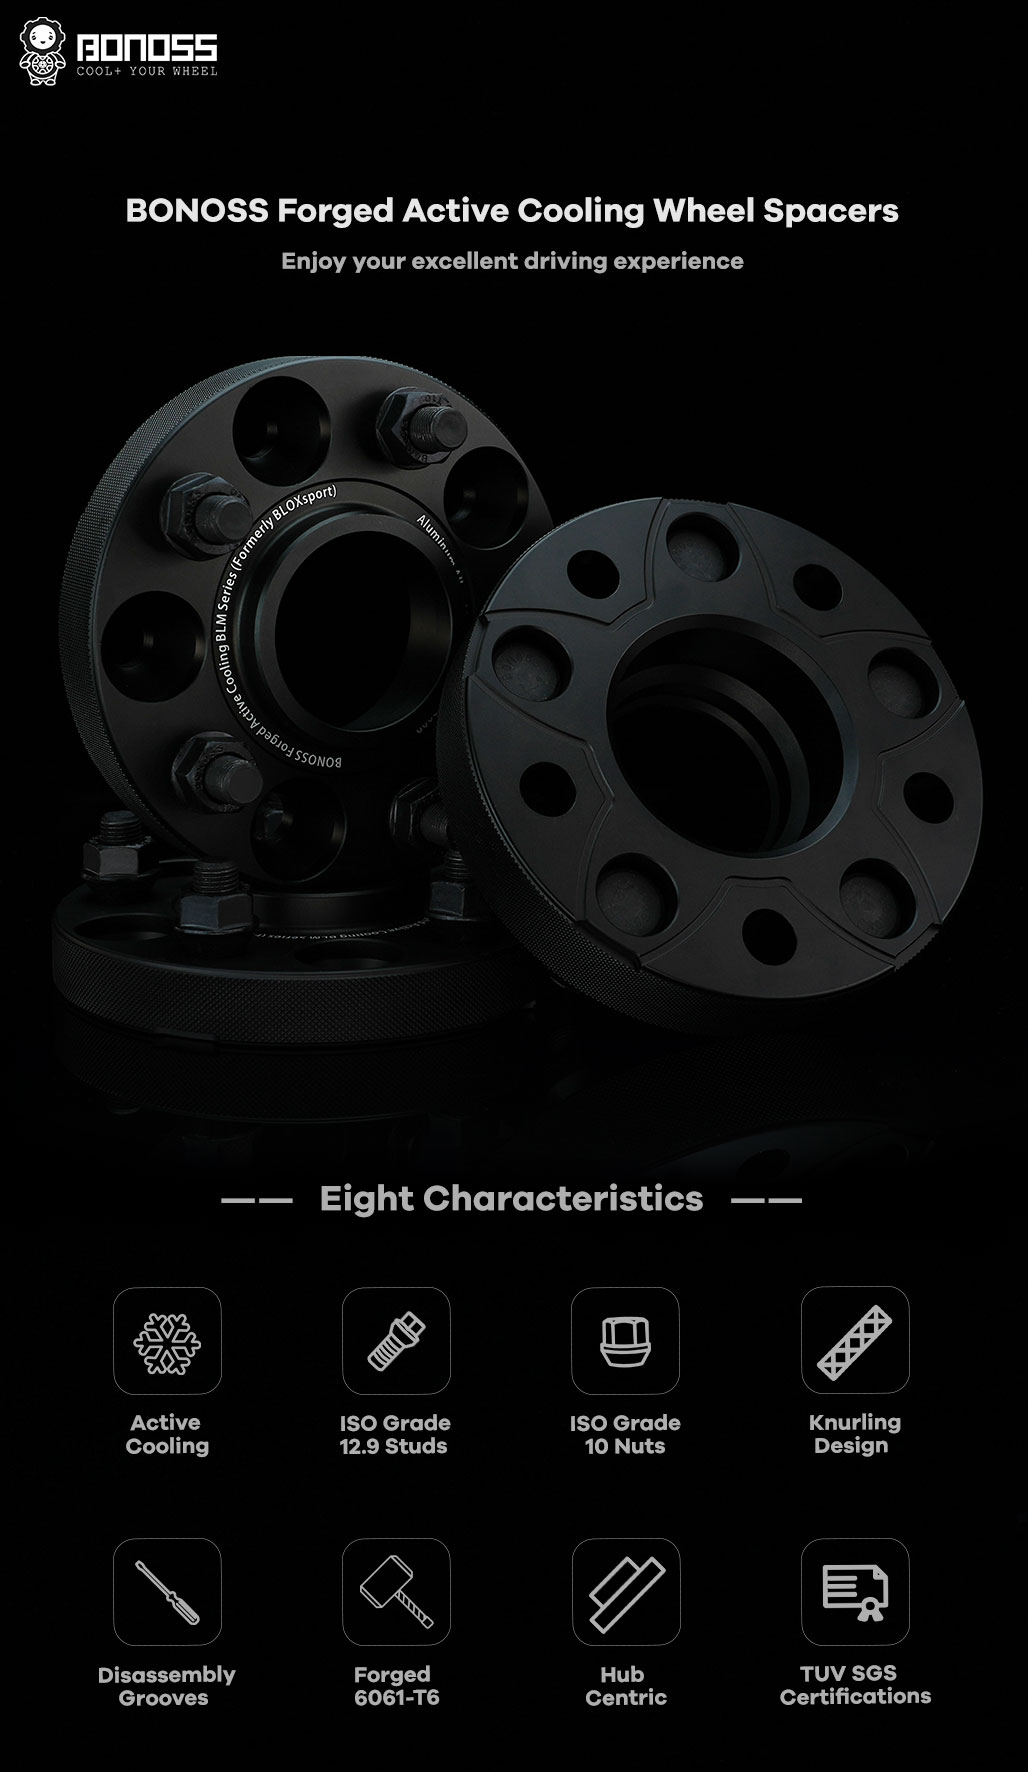 BONOSS Forged Active Cooling Hubcentric Wheel Spacers 5 Lug Wheel Adapters Wheel ET Spacers AL6061-T6